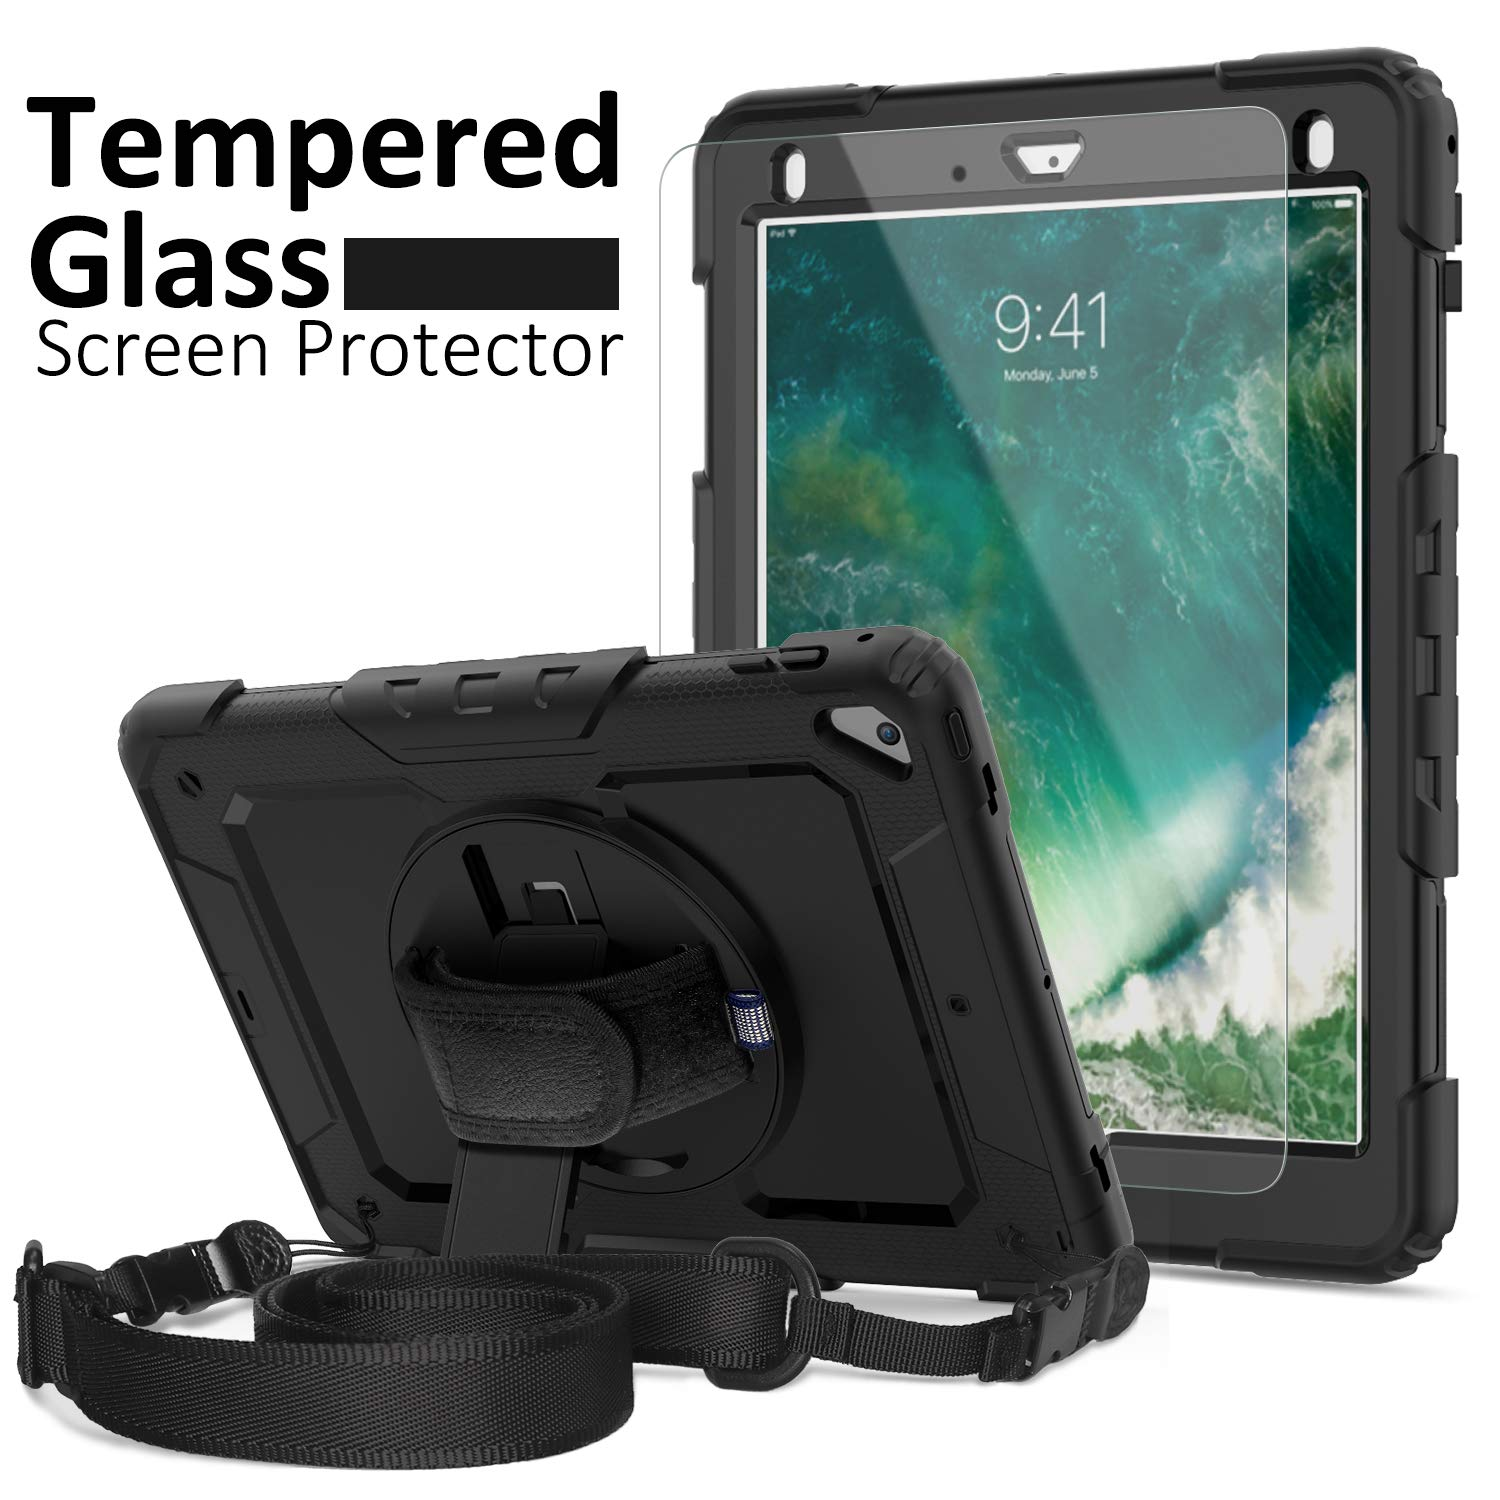 iPad 6th Generation Cases, New iPad 9.7 Case 2017/2018, [Kid Proof] Ambison Full Body Protective Case with Pencil Holder, Tempered Glass Screen Protector, 360° Rotatable Kickstand & Hand Strap (Black)